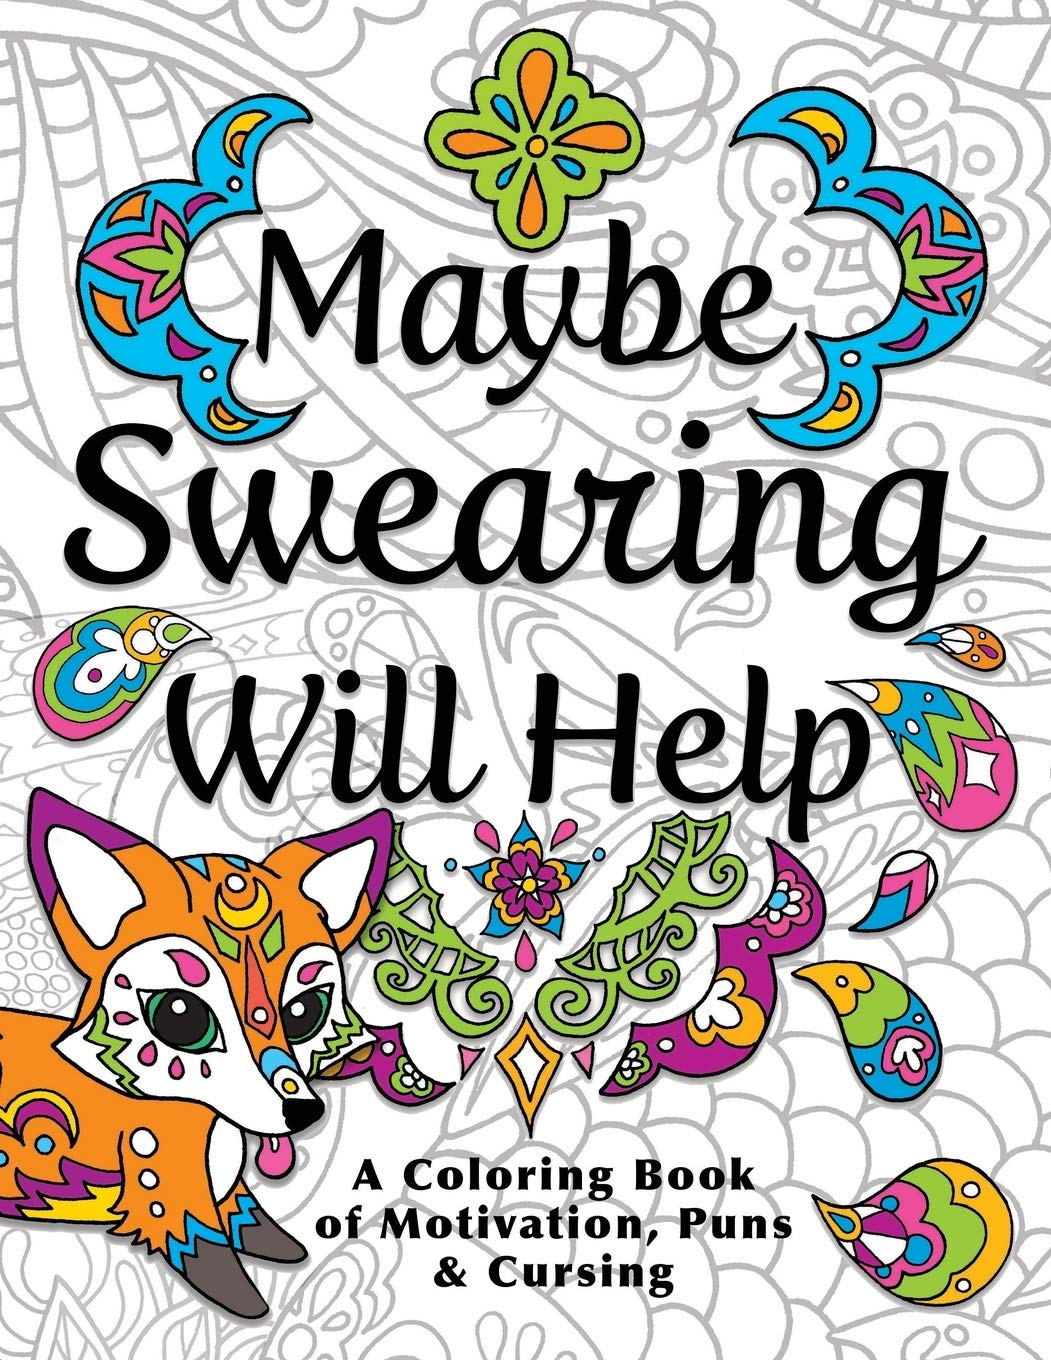 - Amazon.com: Maybe Swearing Will Help: Adult Coloring Book